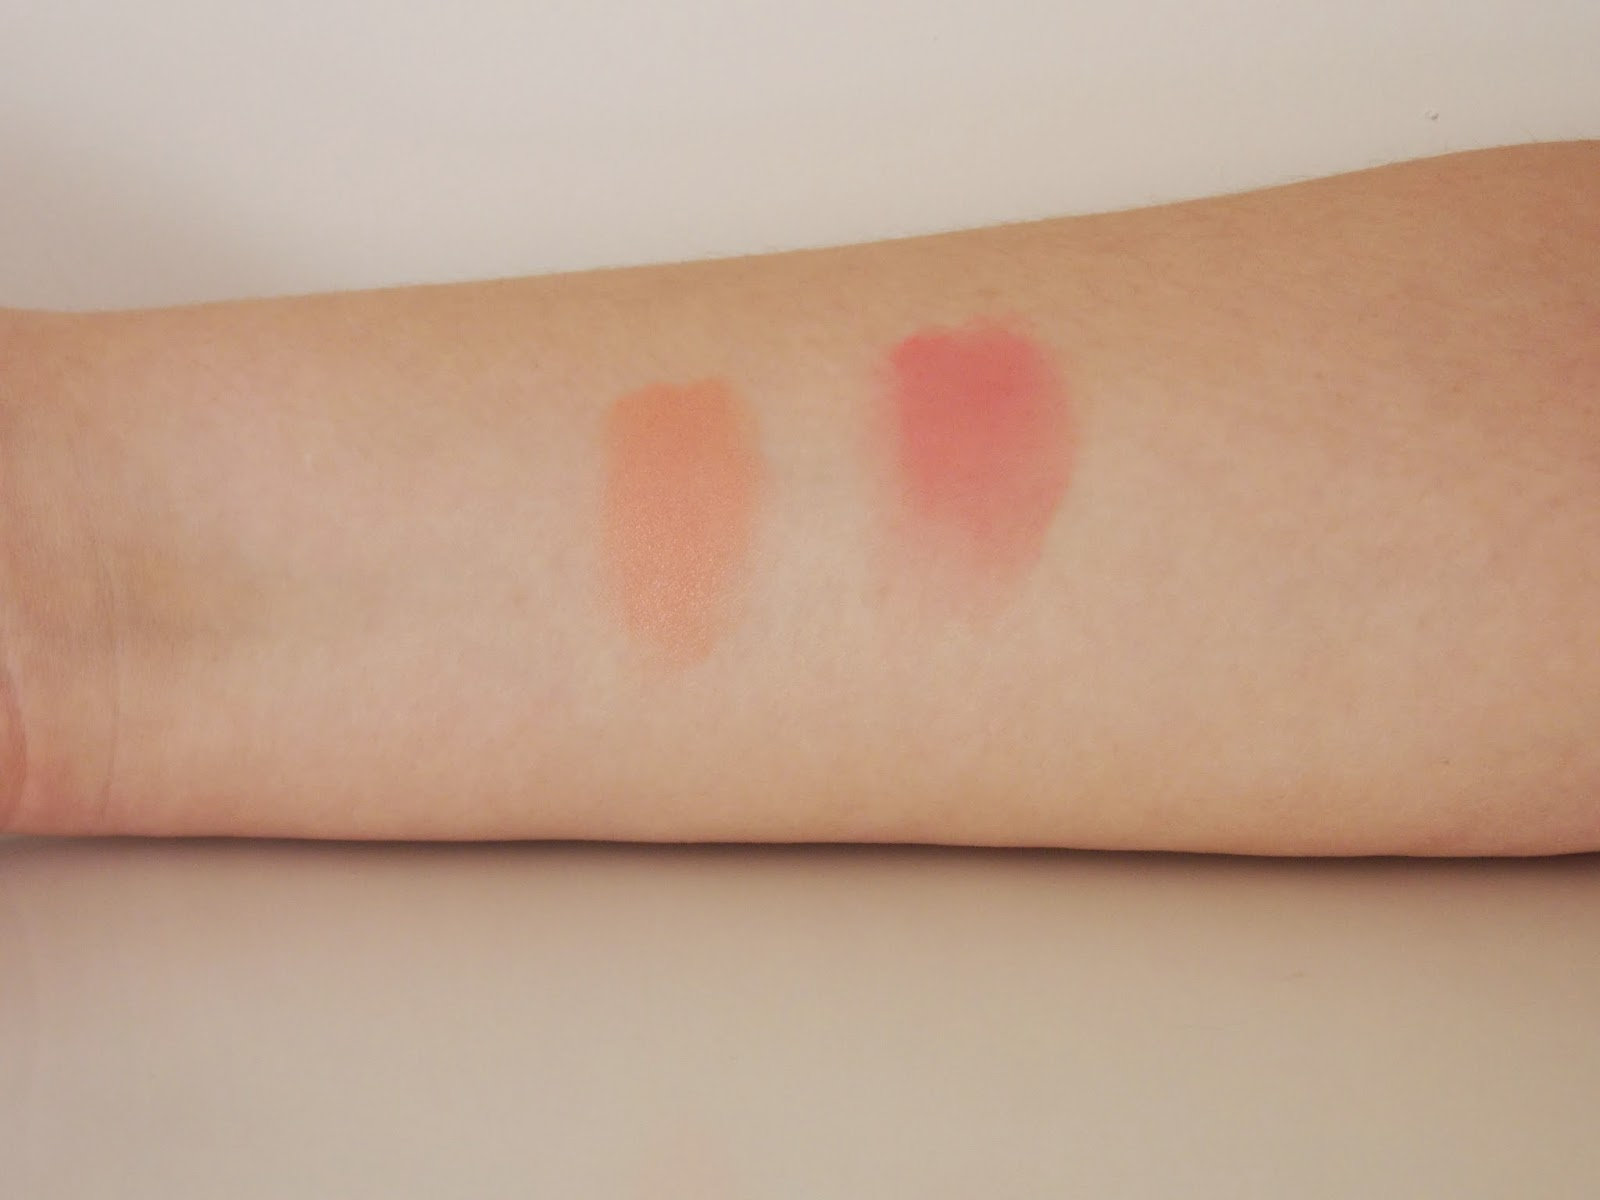 Illamasqua Blusher Rude and Hussy - swatches